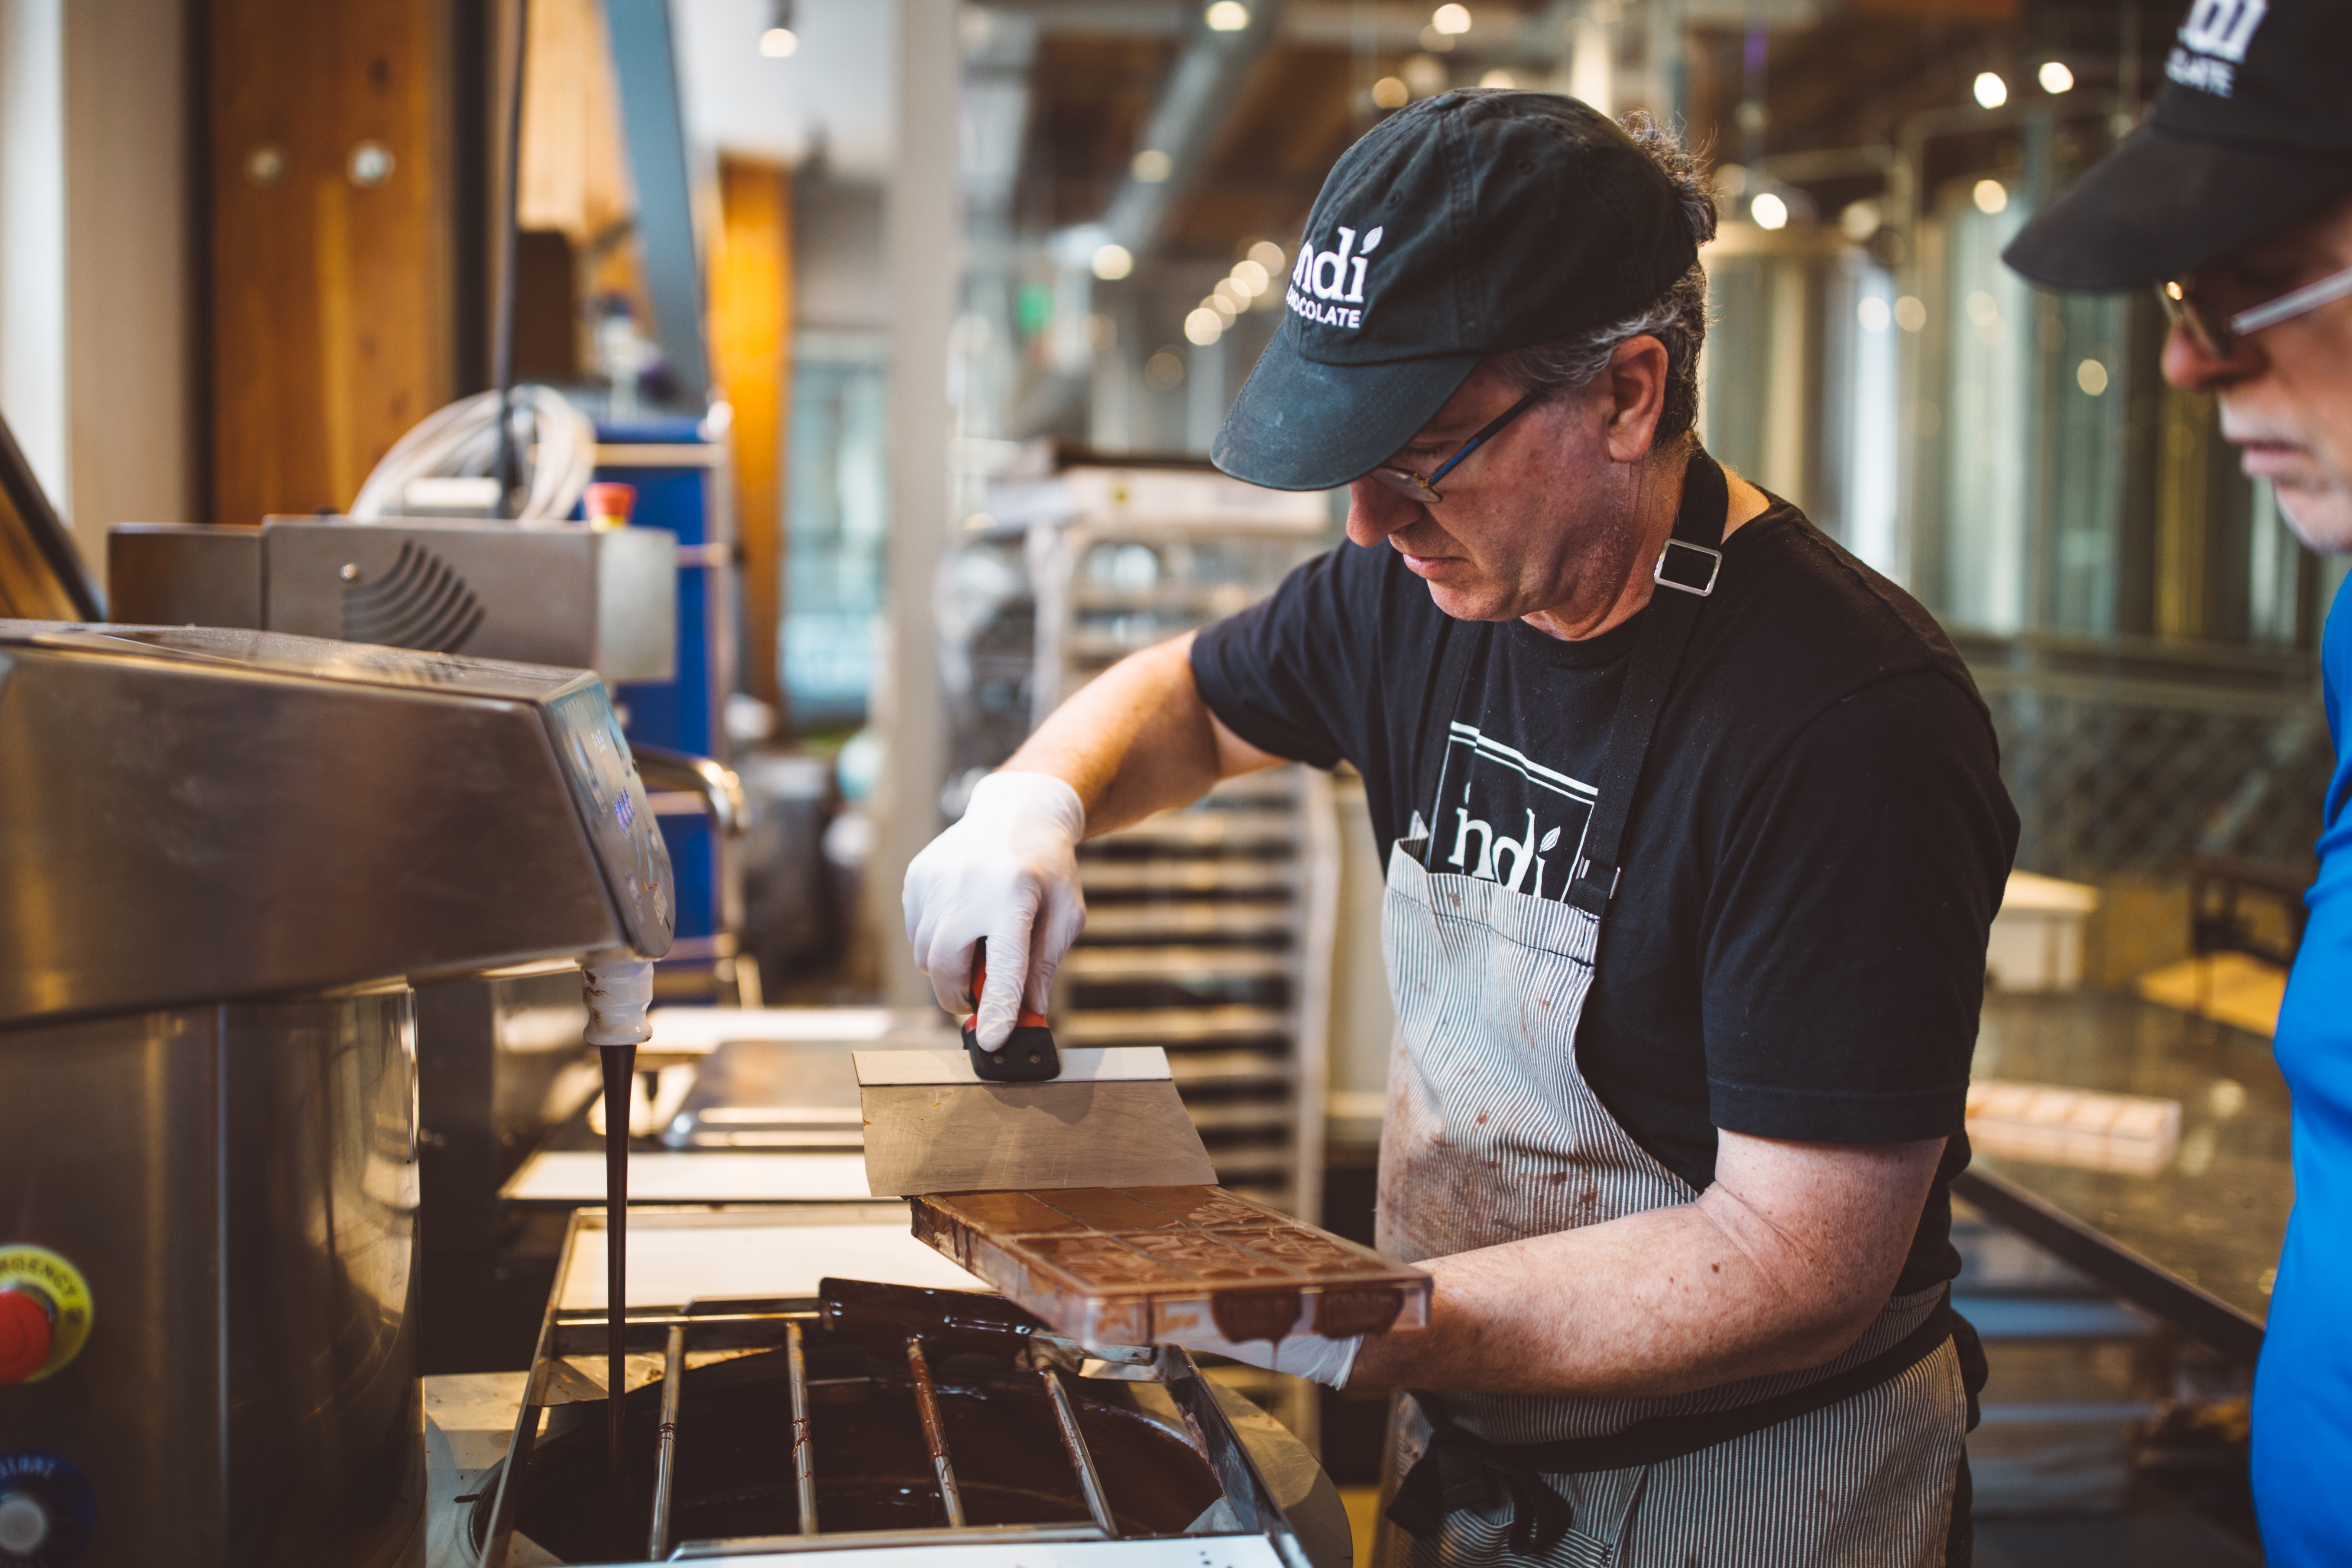 <p>The refined chocolate is then tempered, where it acquires its shiny and snappy characteristics.{&amp;nbsp;} Once it has been adequately tempered, the chocolate is finally poured into a desired mold. Vibration is used to get out any air bubbles, and the chocolate is then cooled until it hardens. (Image: Ryan McBoyle / Seattle Refined)</p>